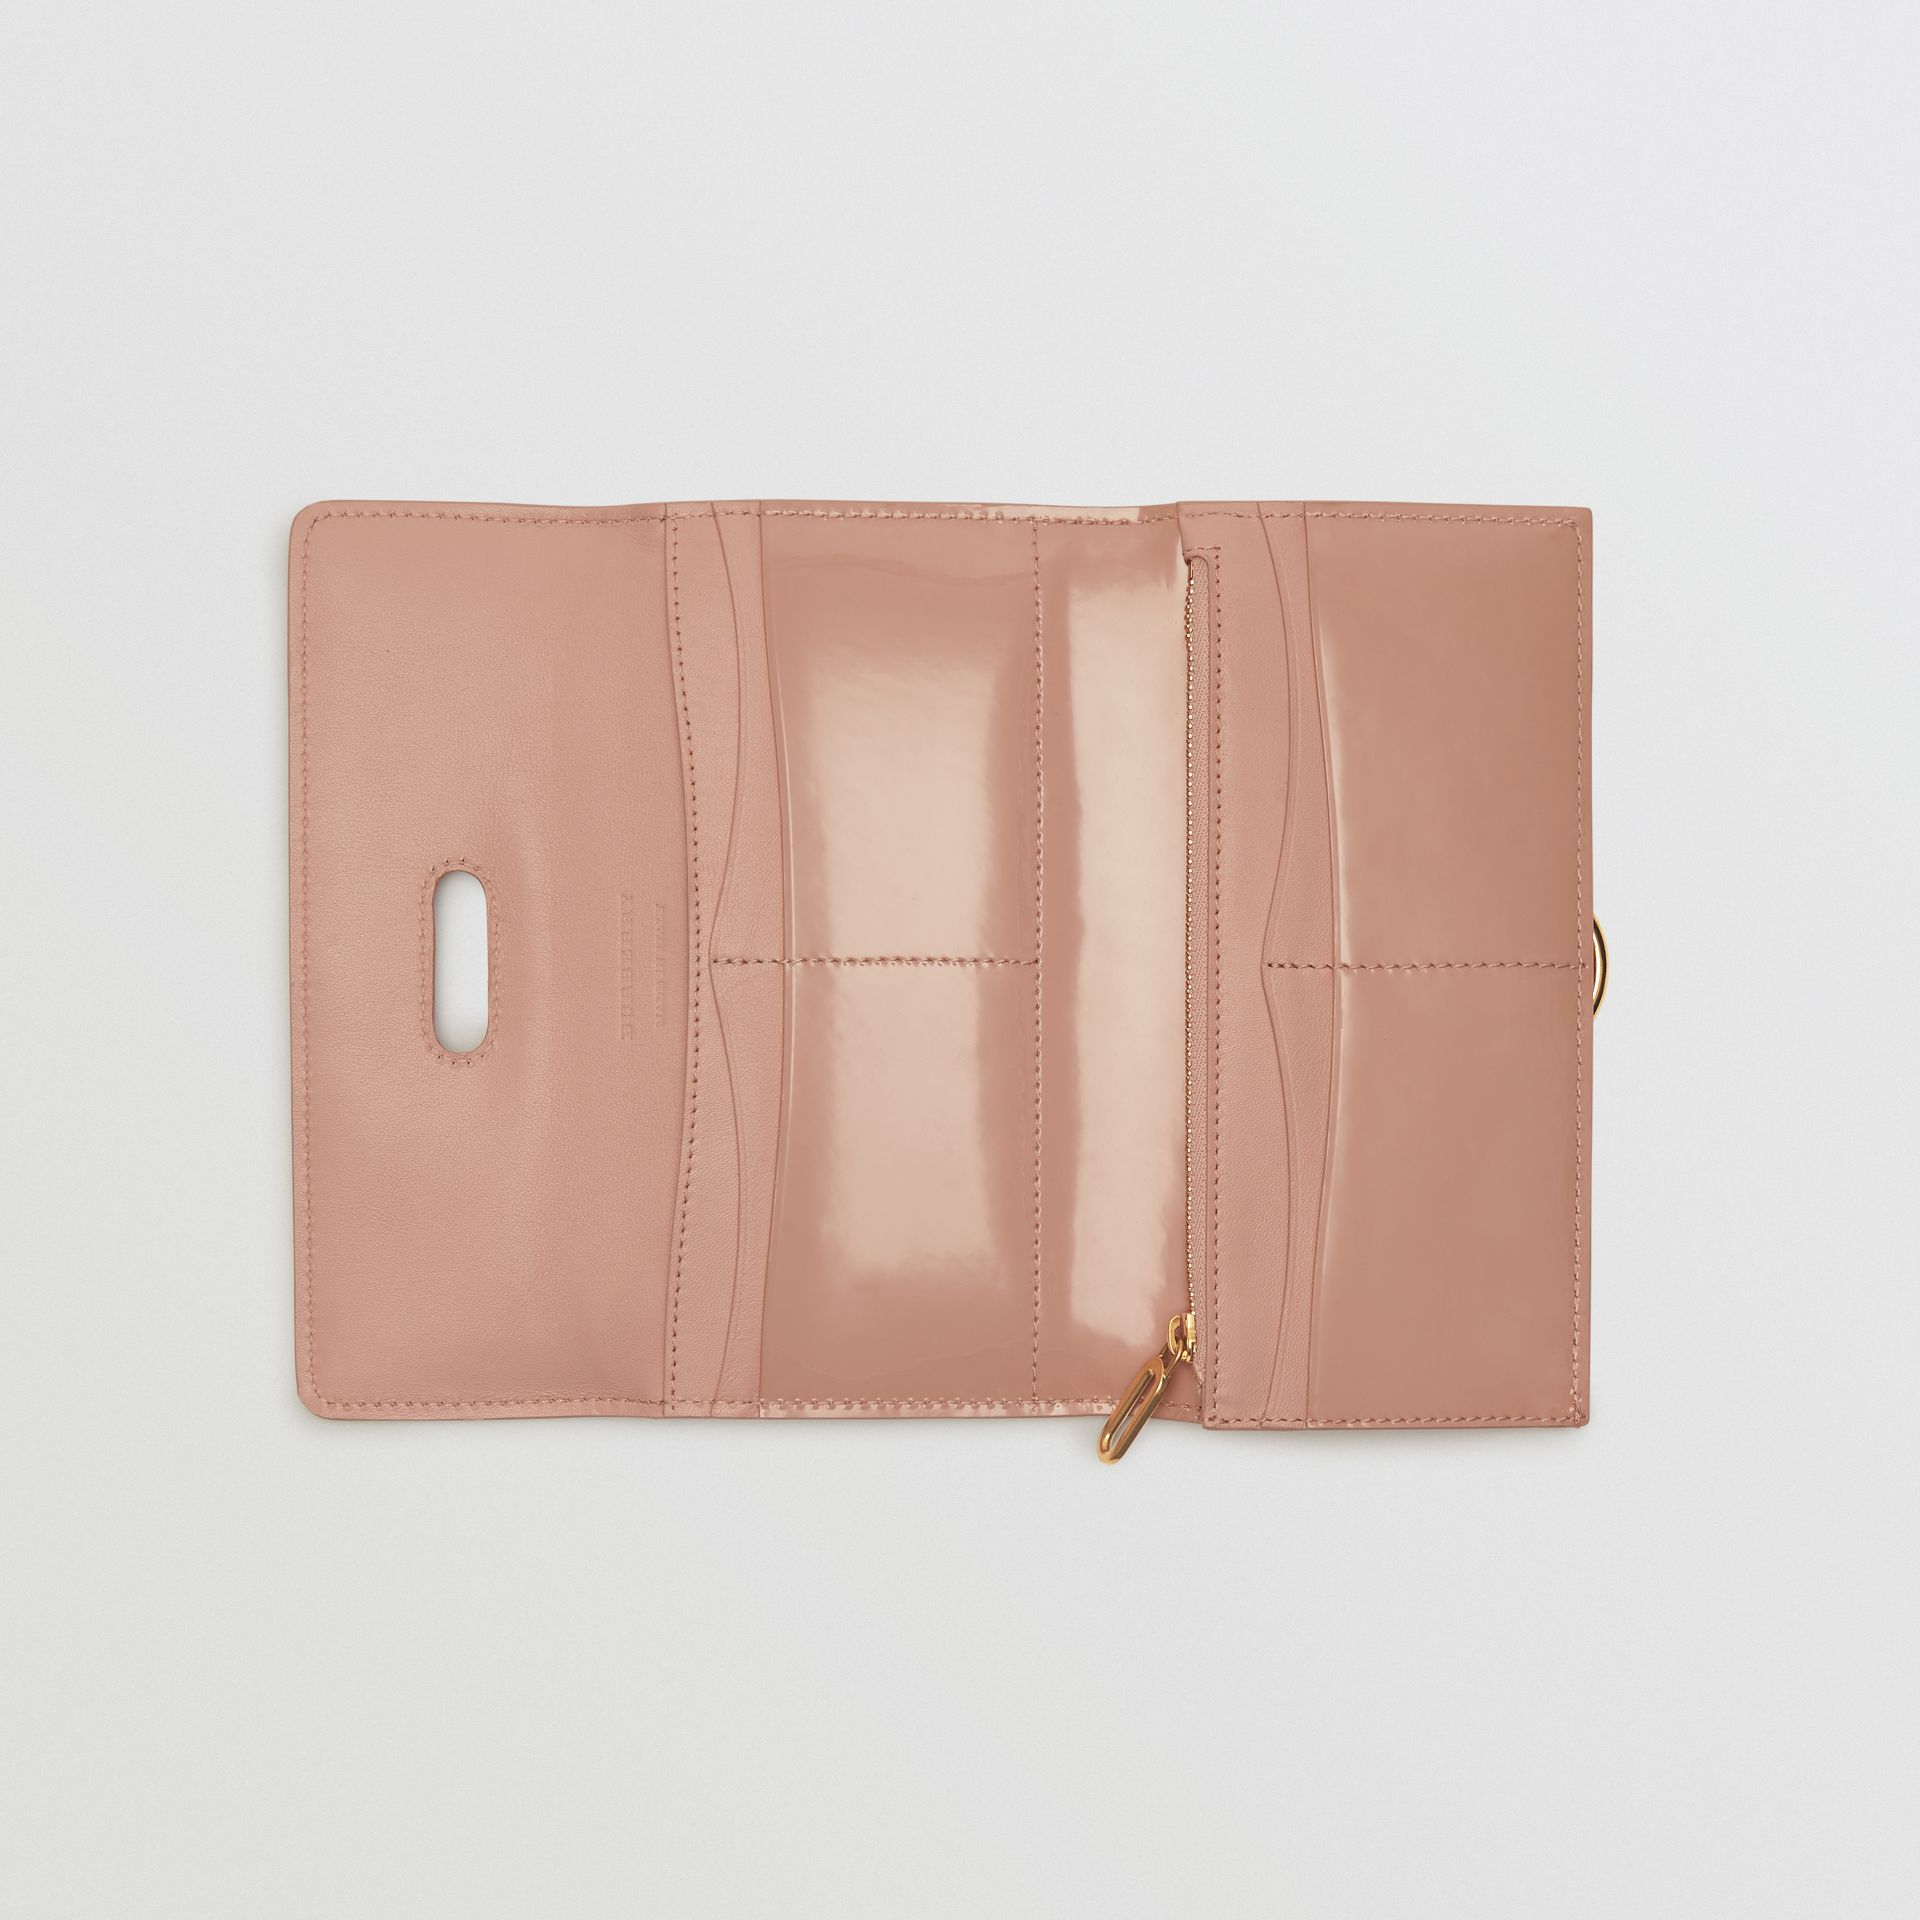 D-ring Patent Leather Continental Wallet in Pale Fawn Pink - Women | Burberry Australia - gallery image 2